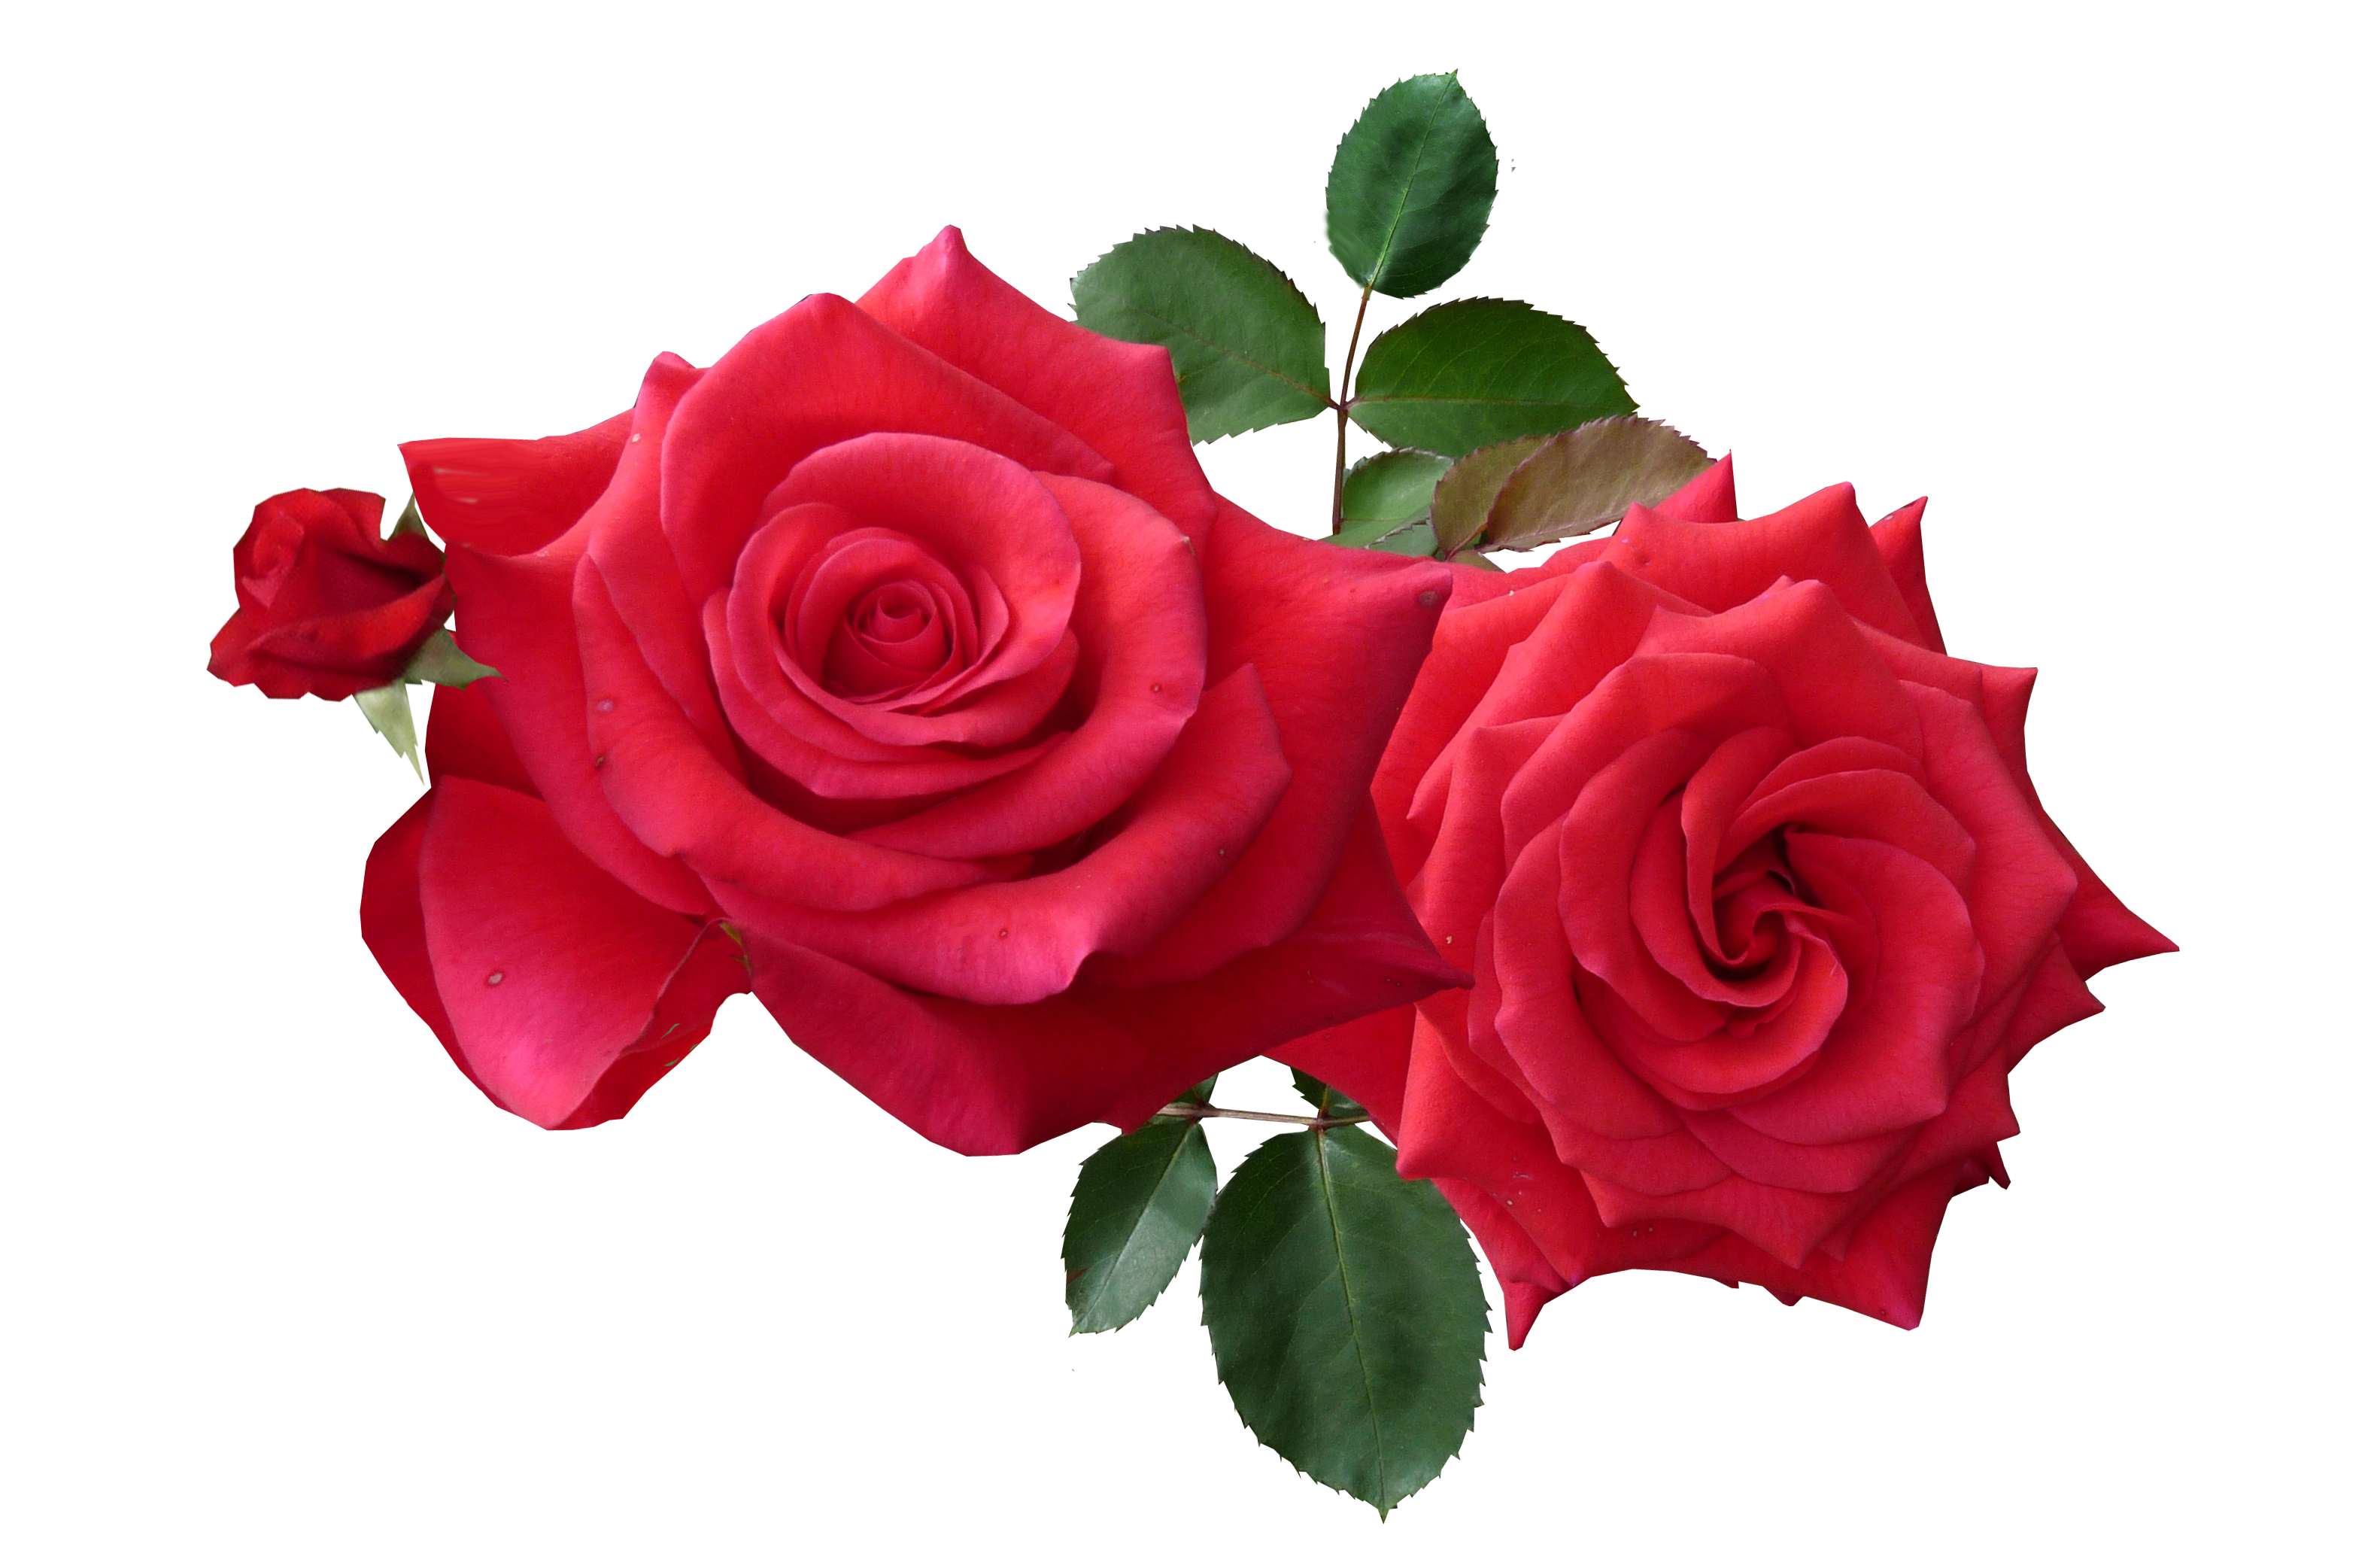 Red Roses PNG Image.